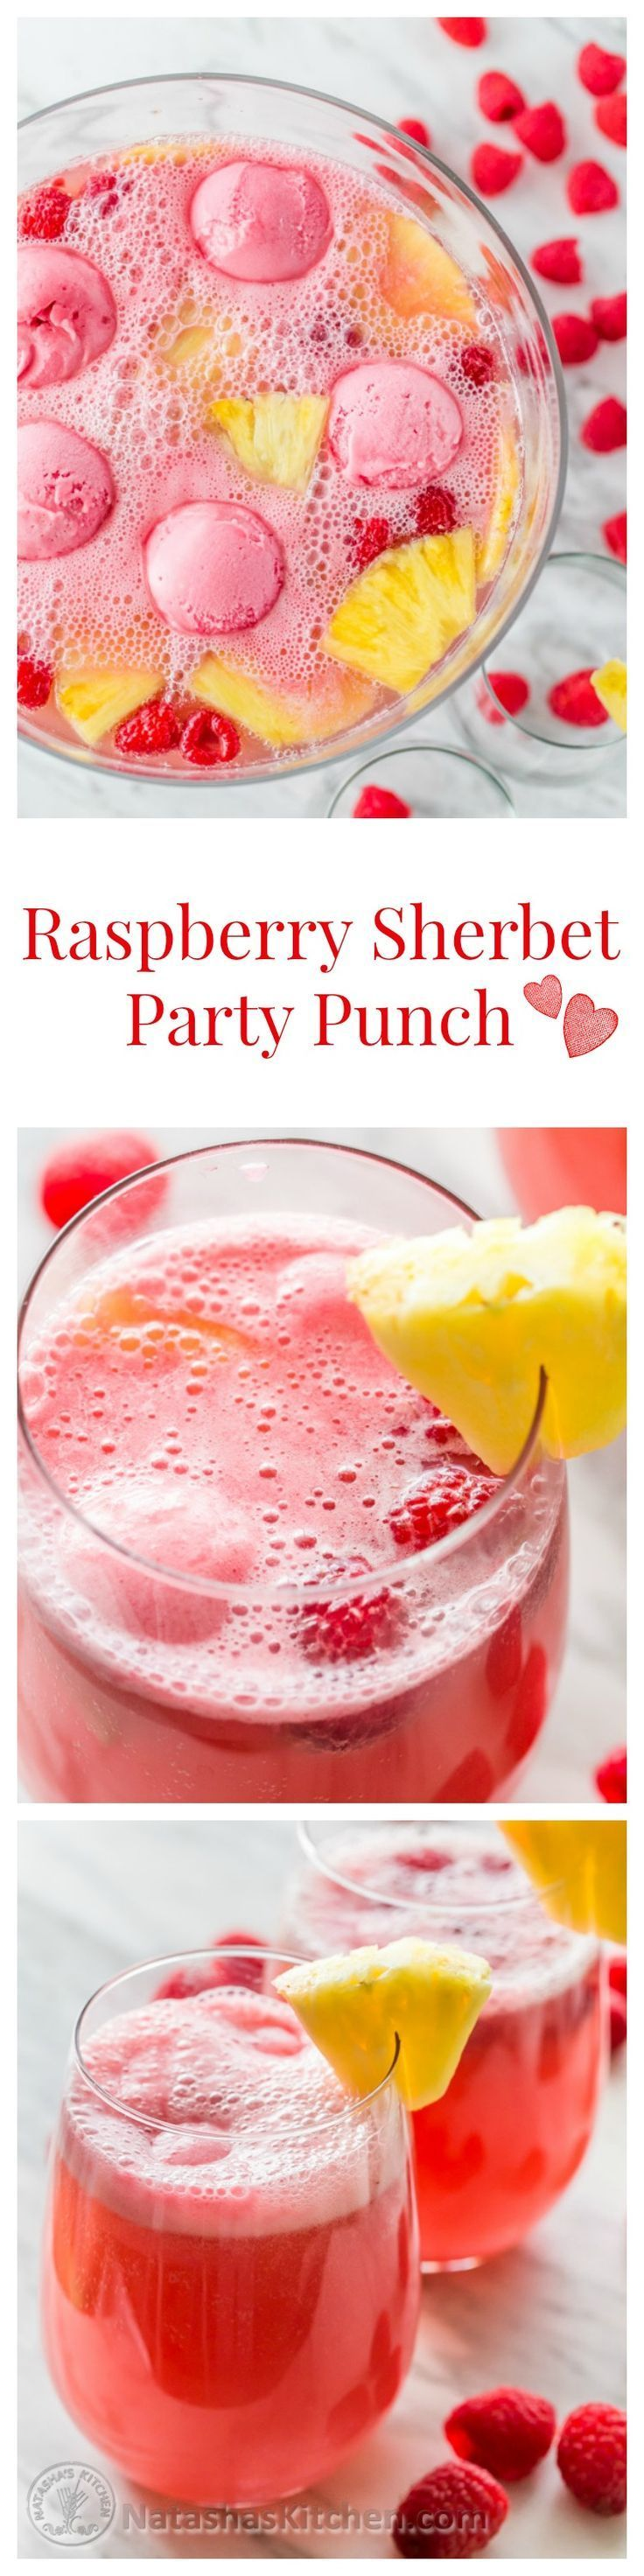 This Sherbet Party Punch is perfect for potlucks, baby showers & other gatherings!